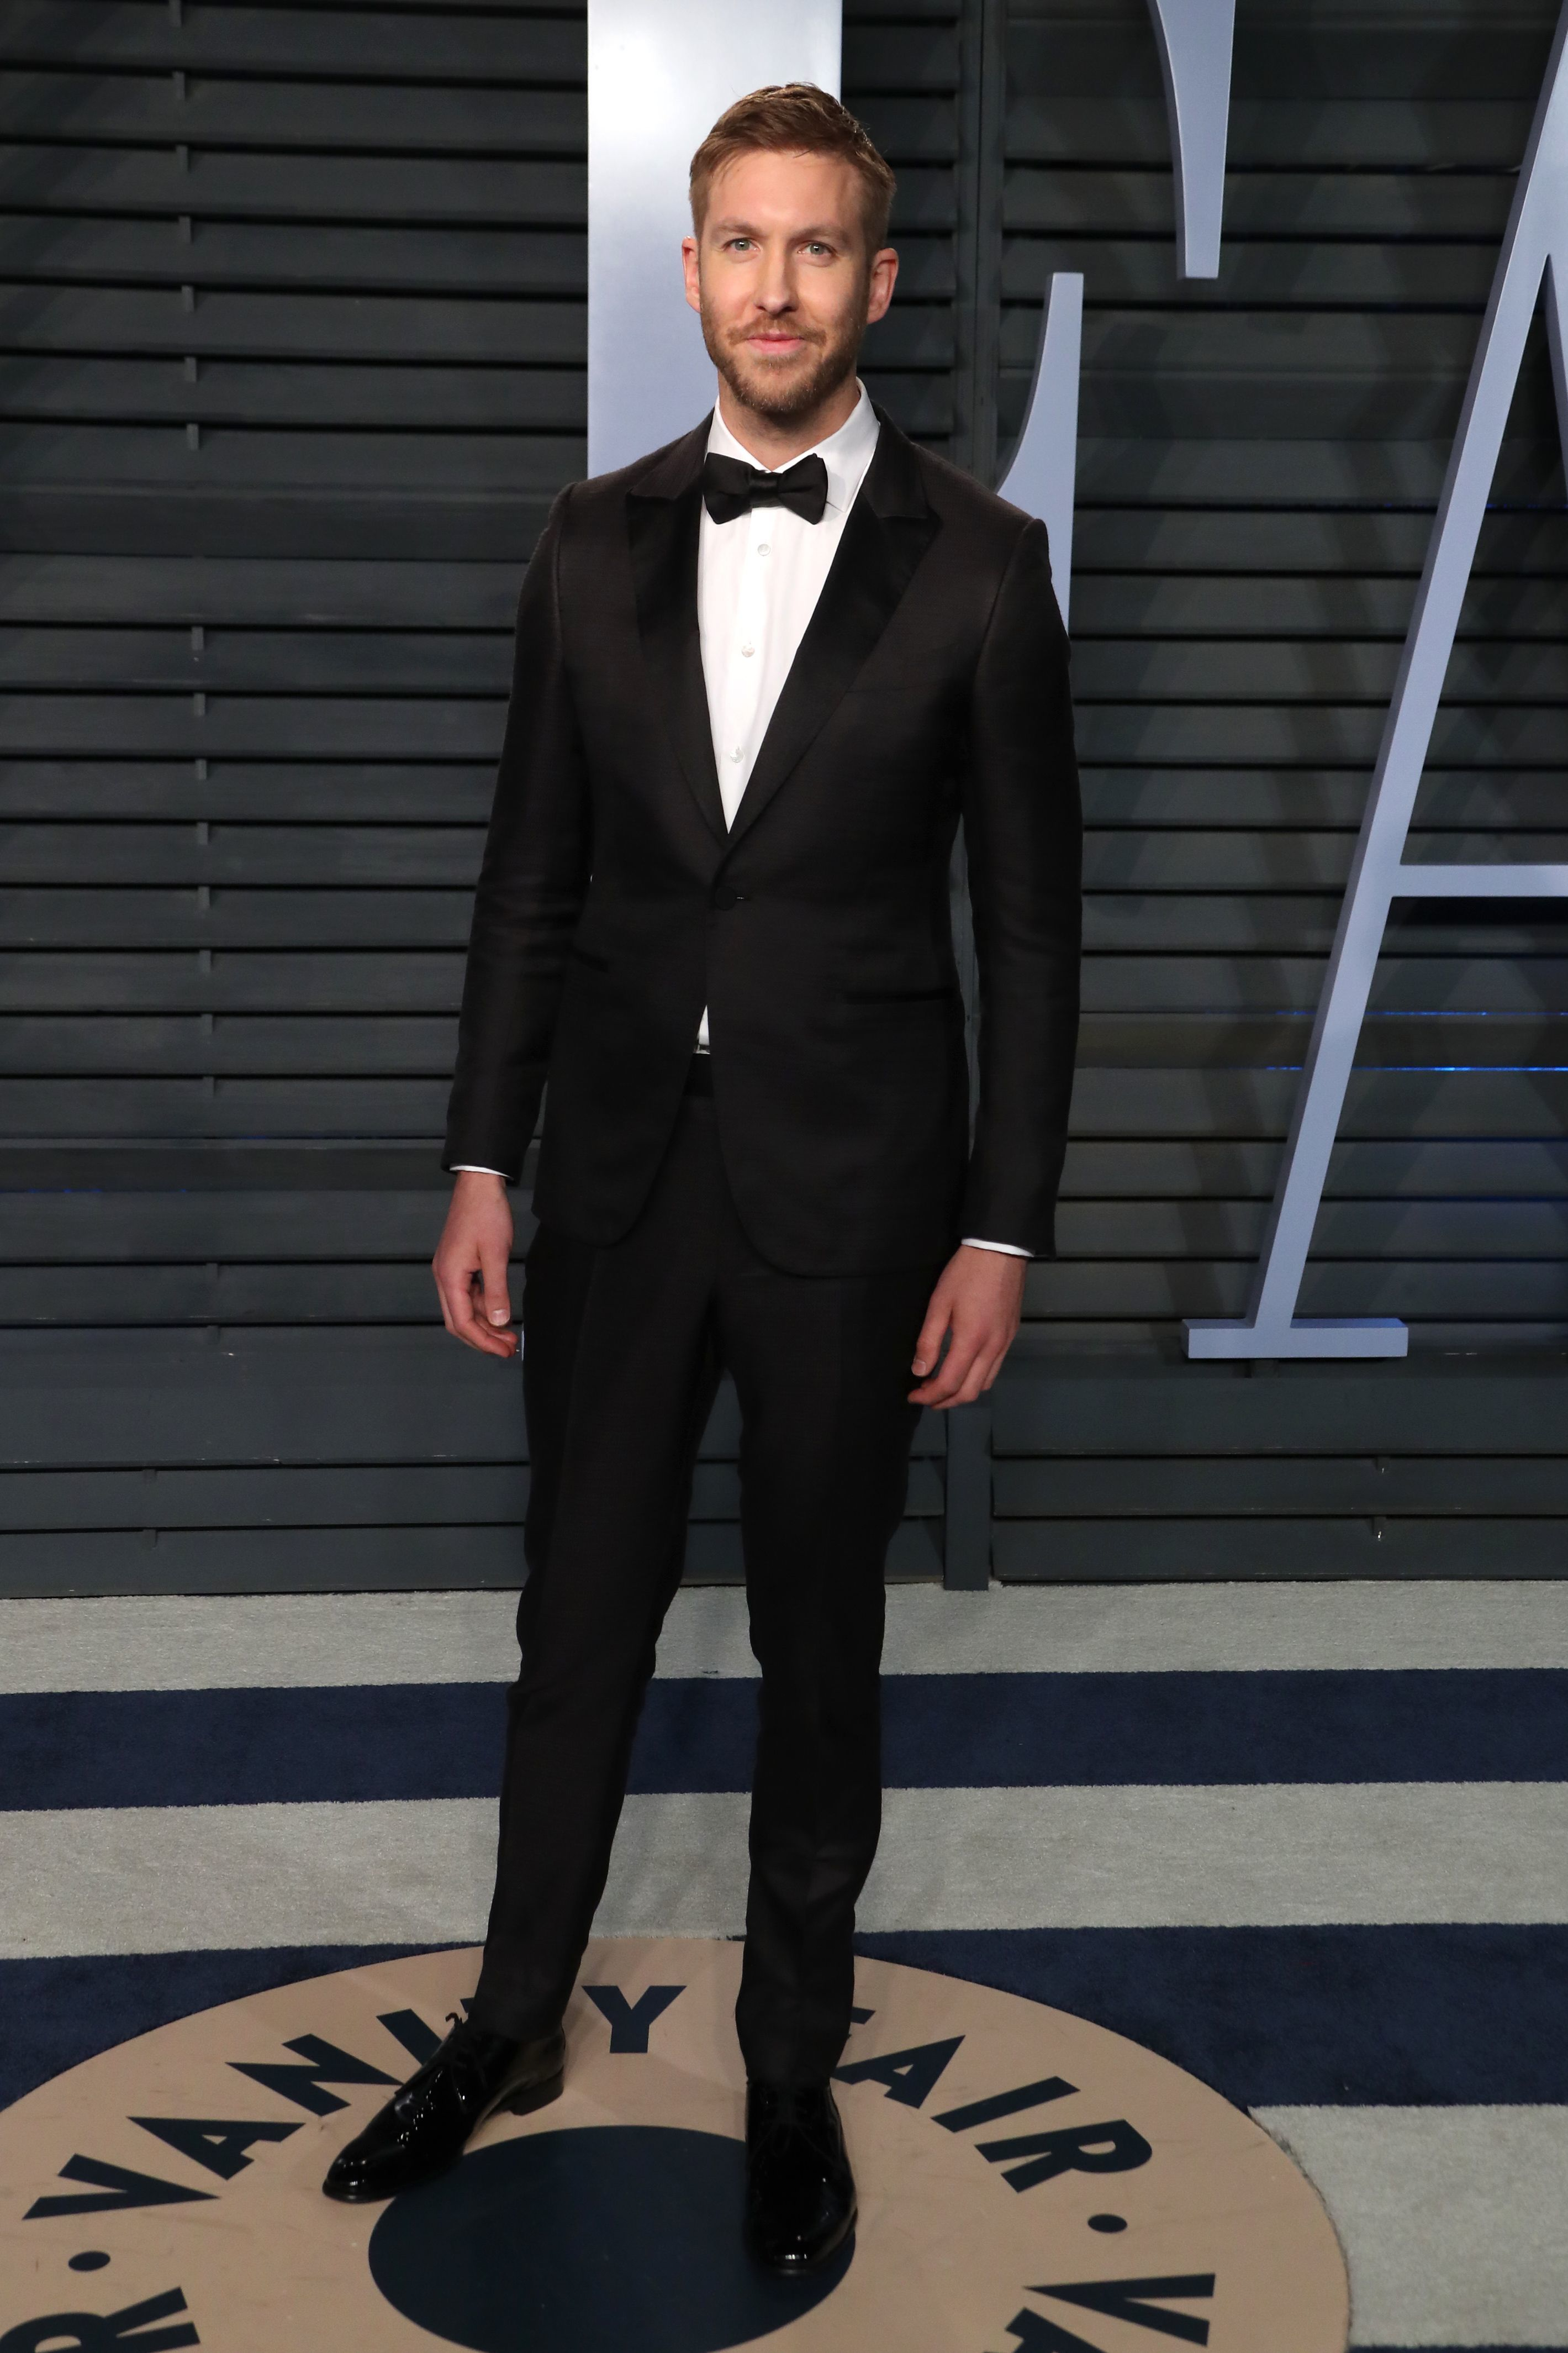 Calvin Harris attends the Vanity Fair Oscar Party in Beverly Hills on March 4, 2018.